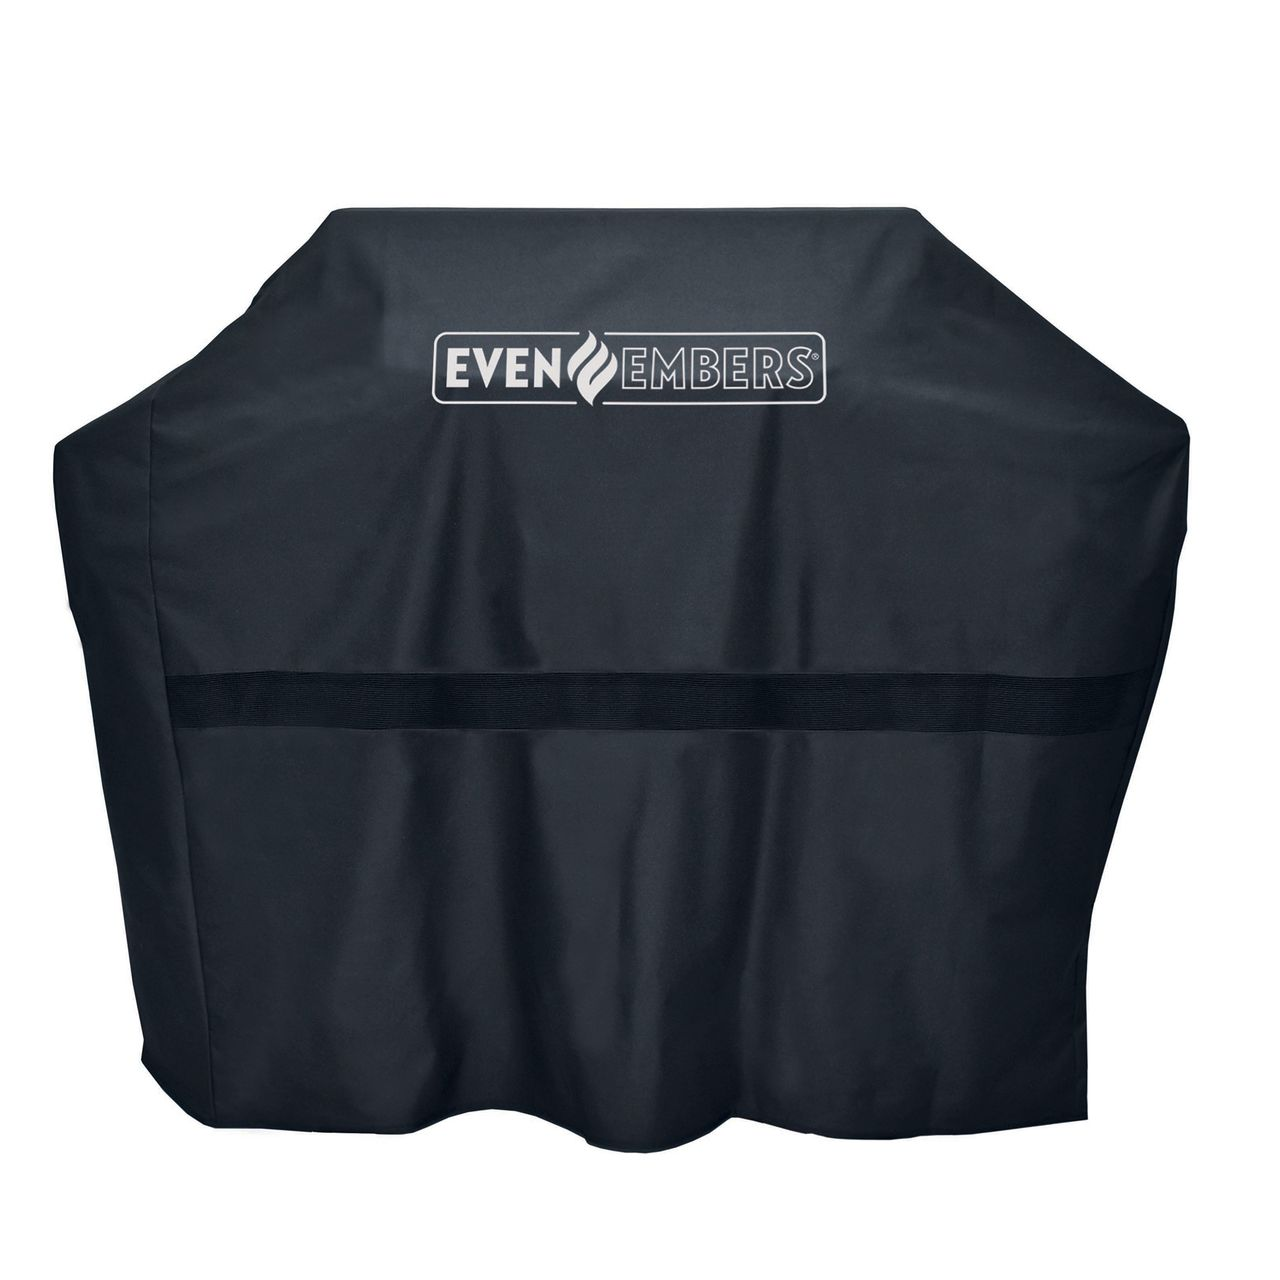 Even Embers 60 Inch Premium Grill Cover